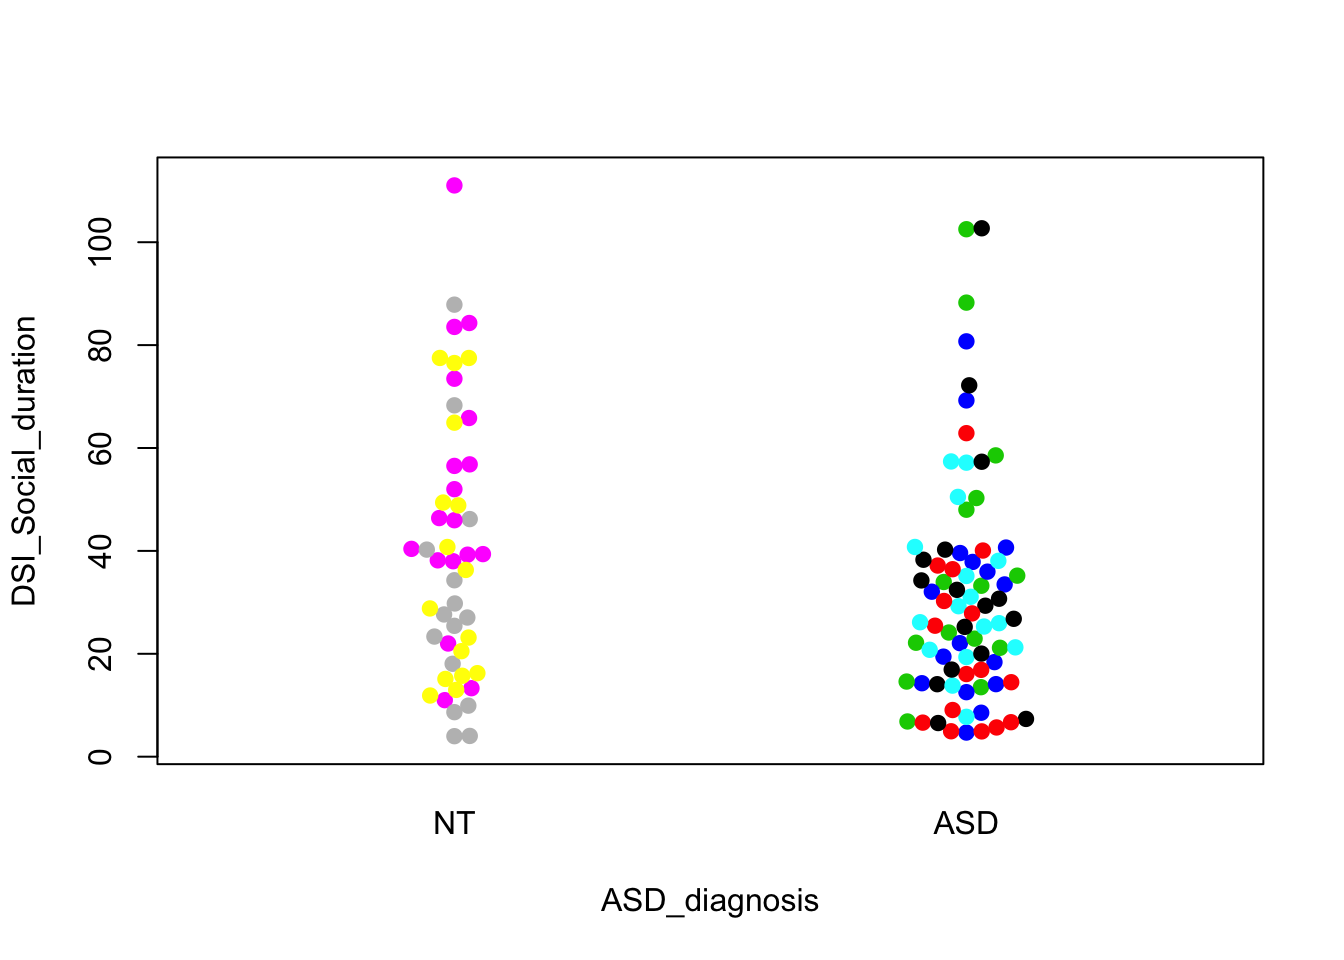 Analysing the mouse microbiome autism data - Biased and